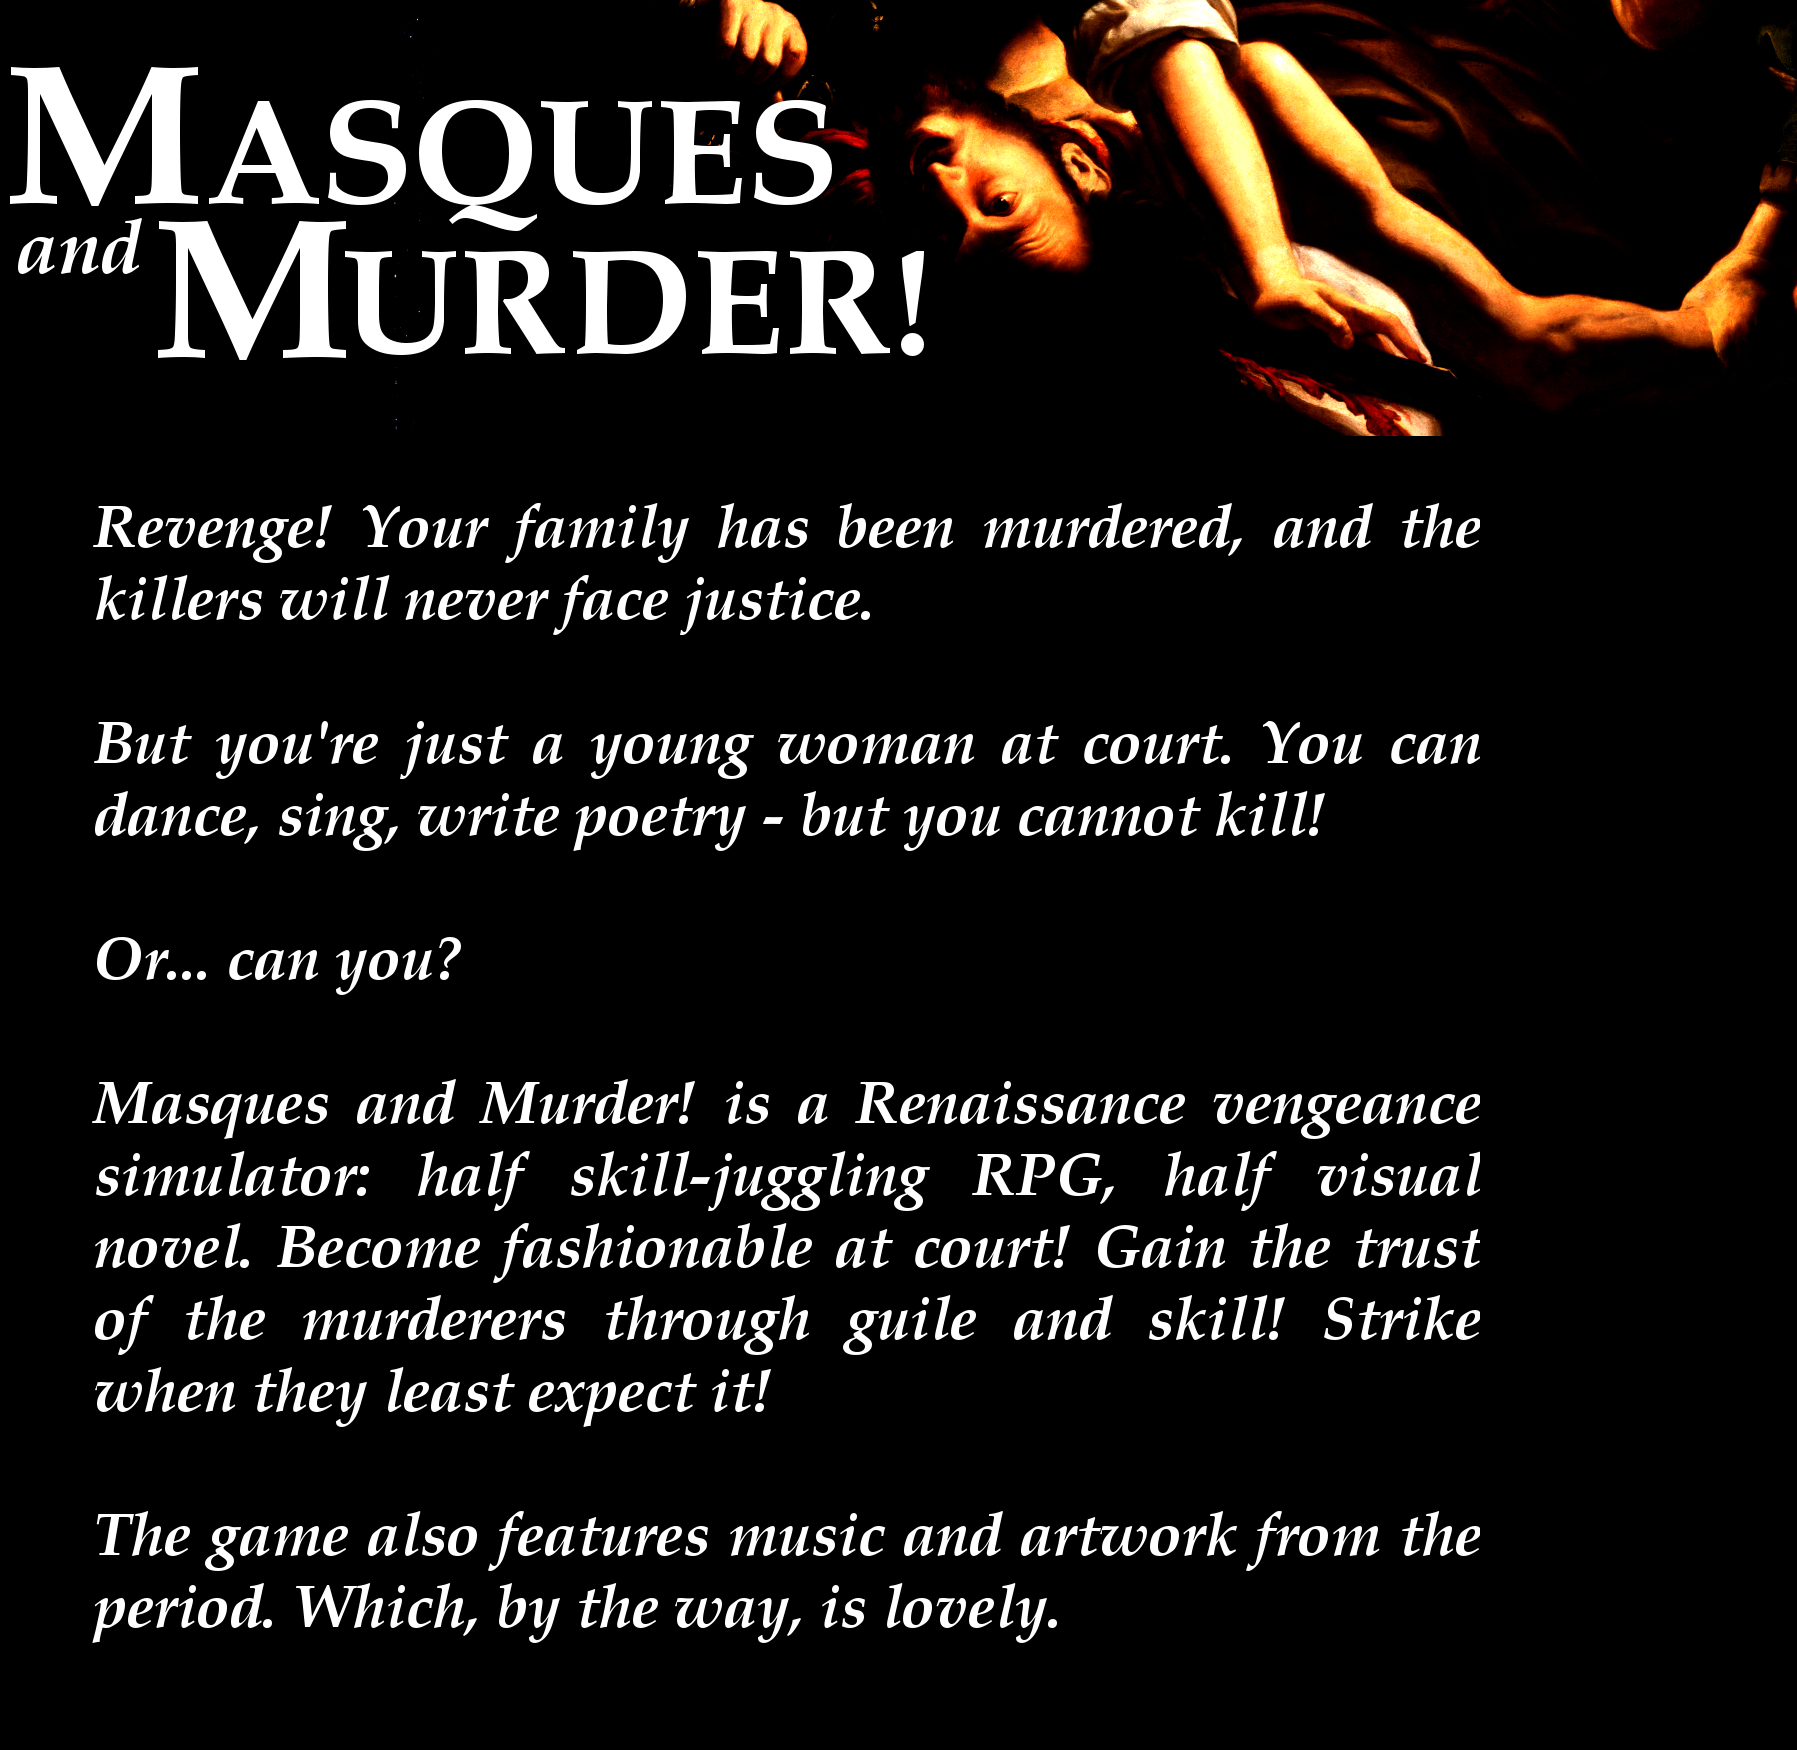 Masques and Murder!